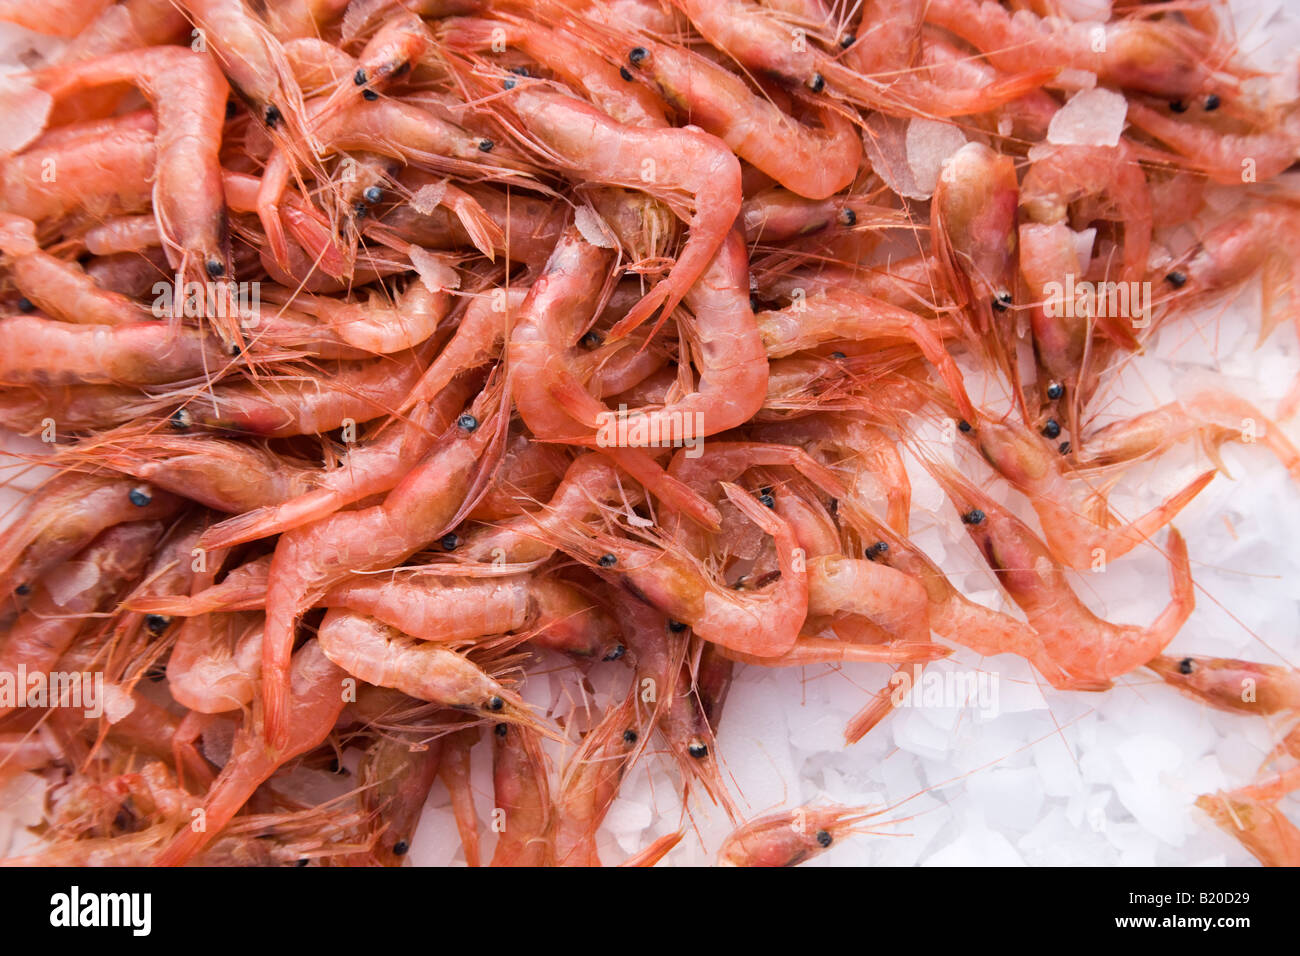 Shrimp commercial catch on ice. - Stock Image